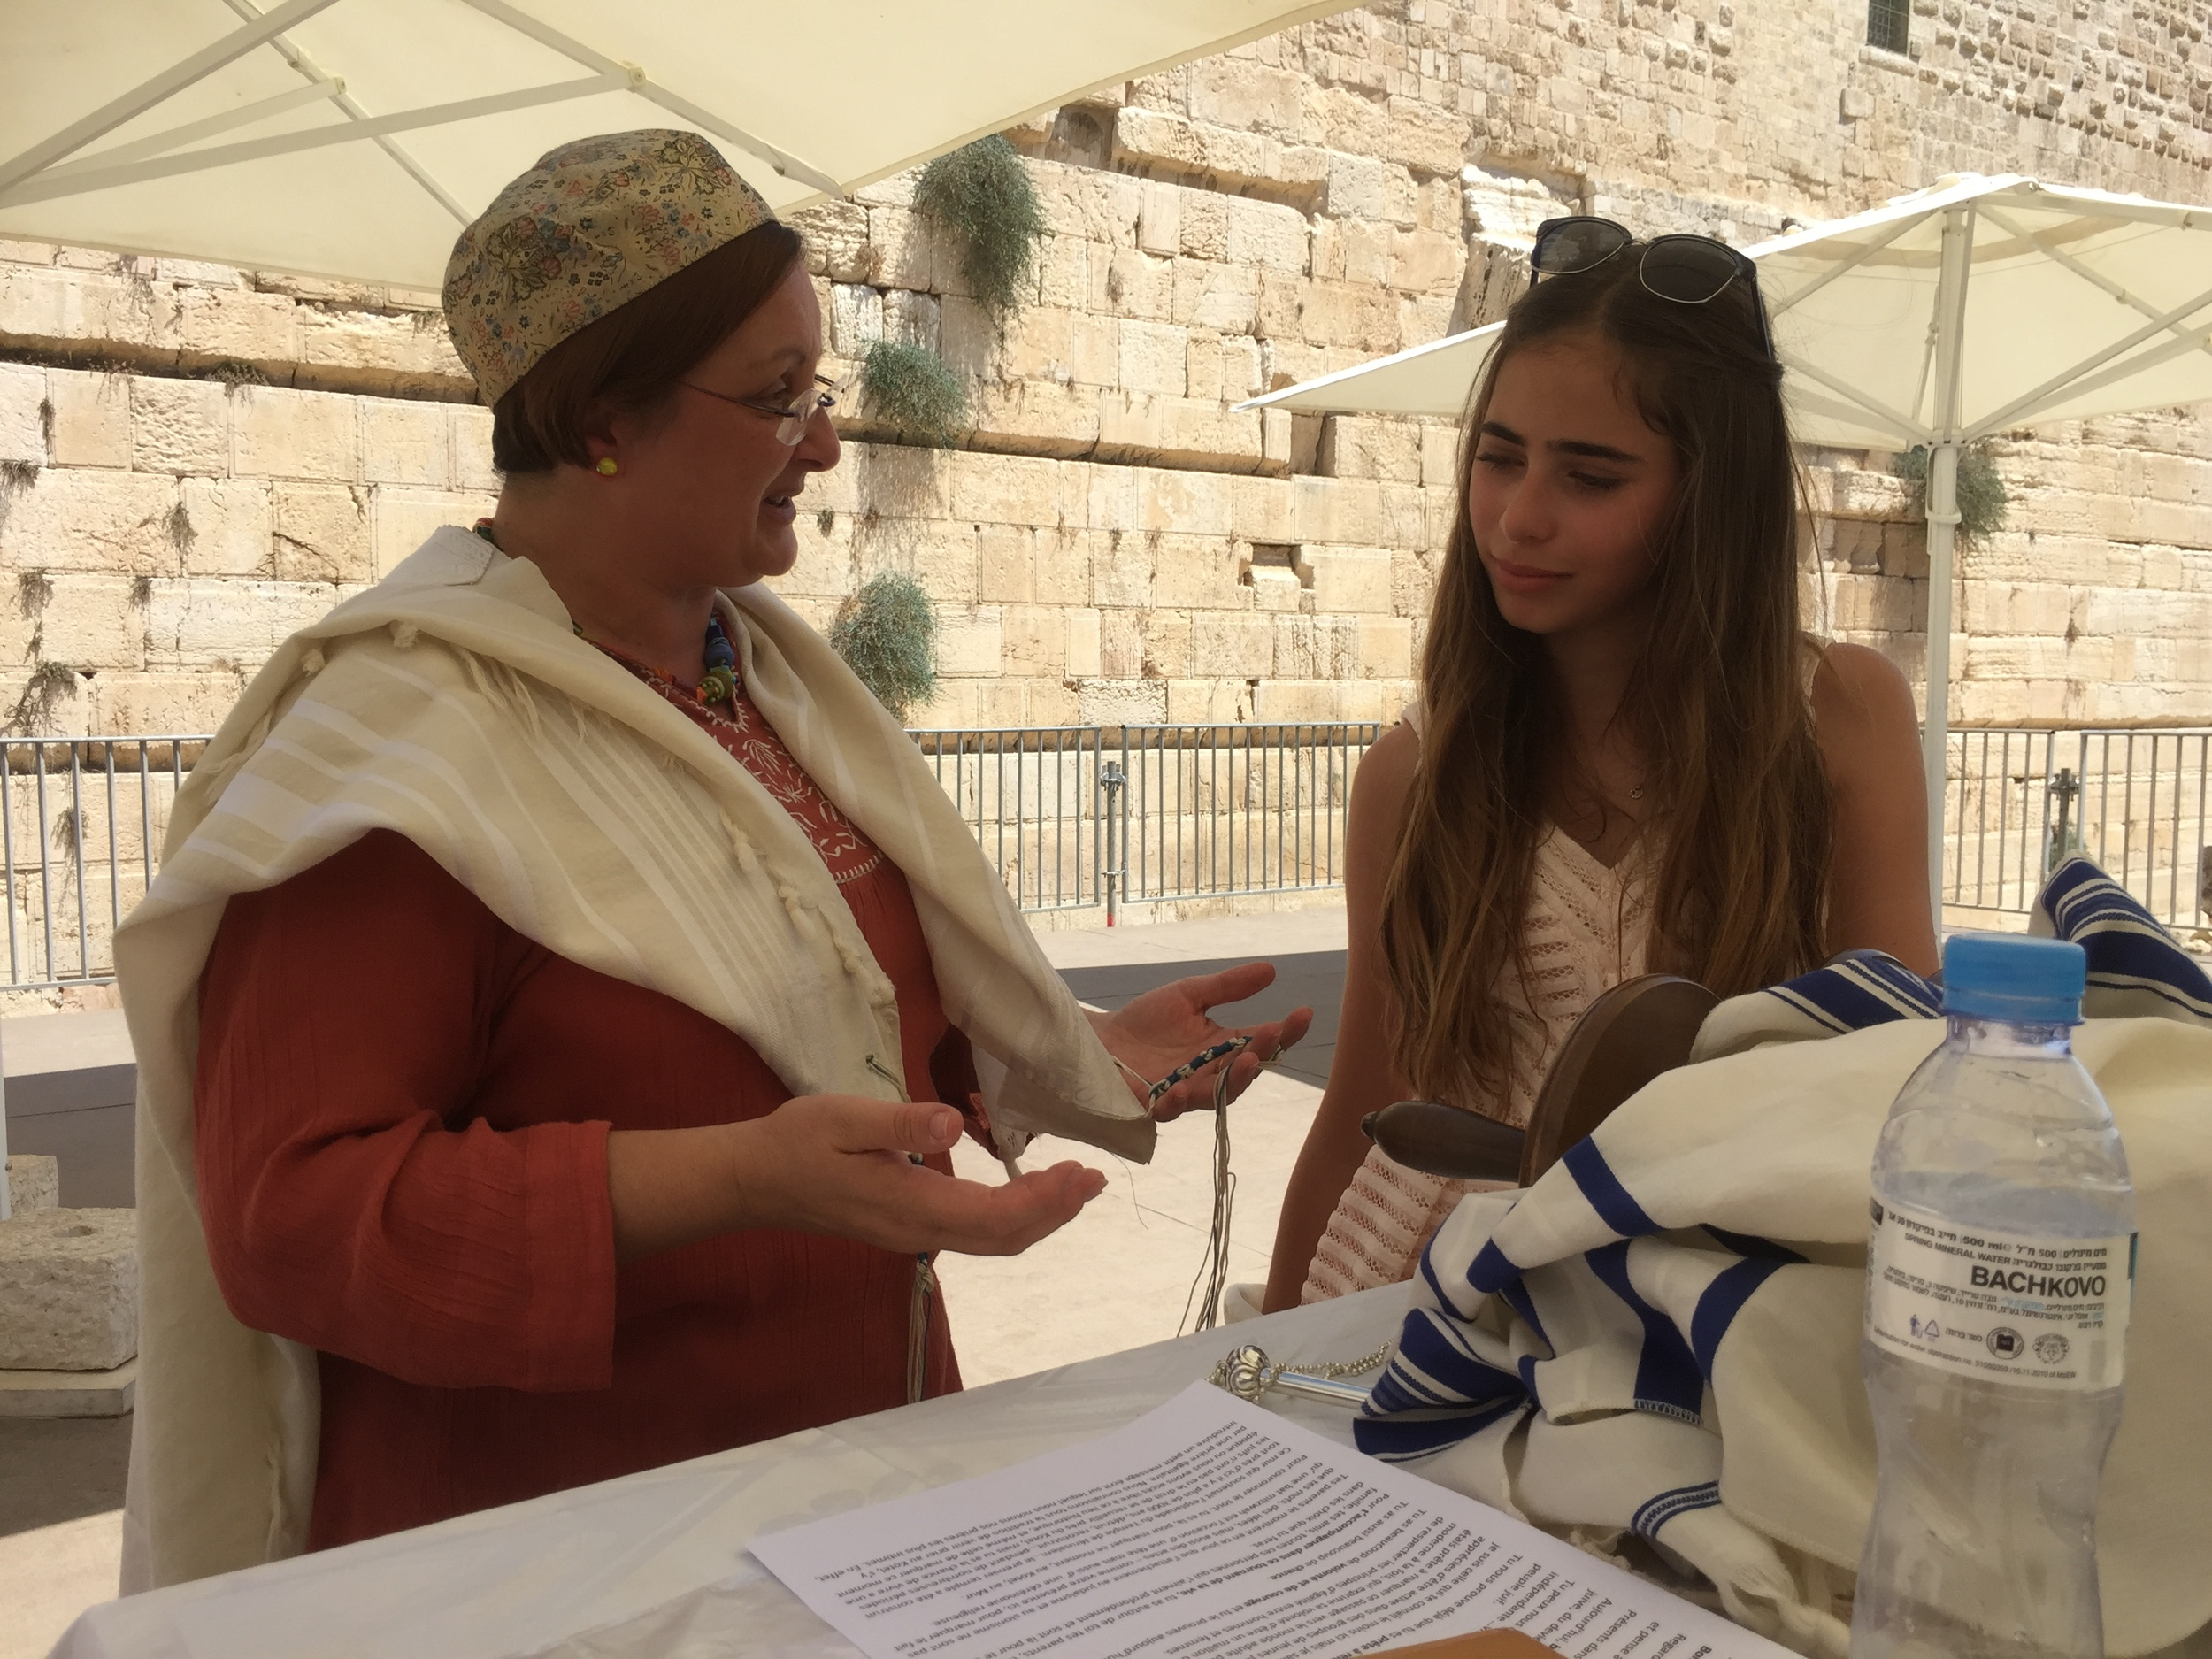 Bat Mitsvah at the Kotel (Western Wall)